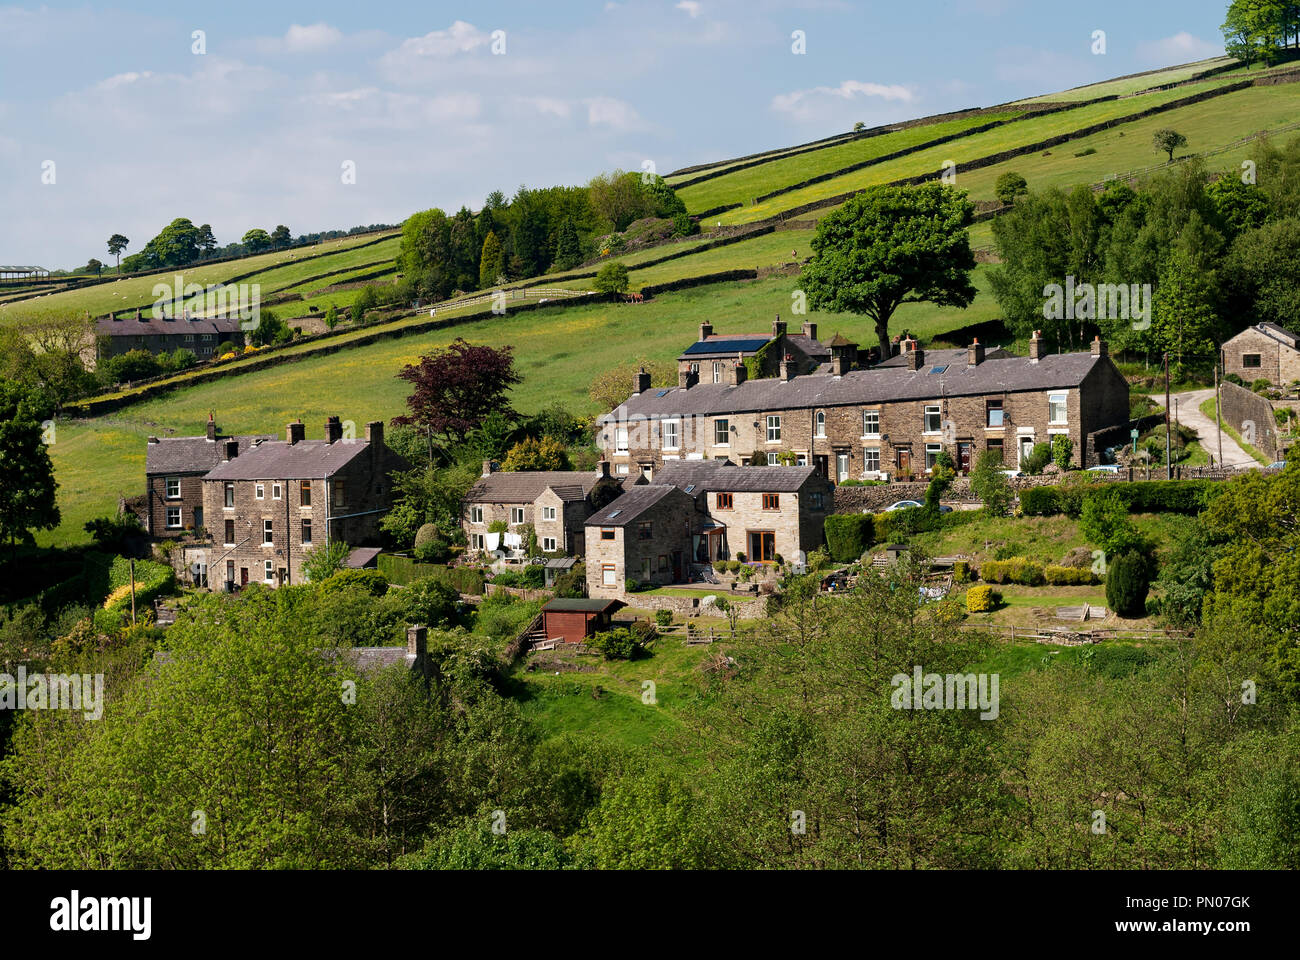 Hayfield Cottages - Stock Image